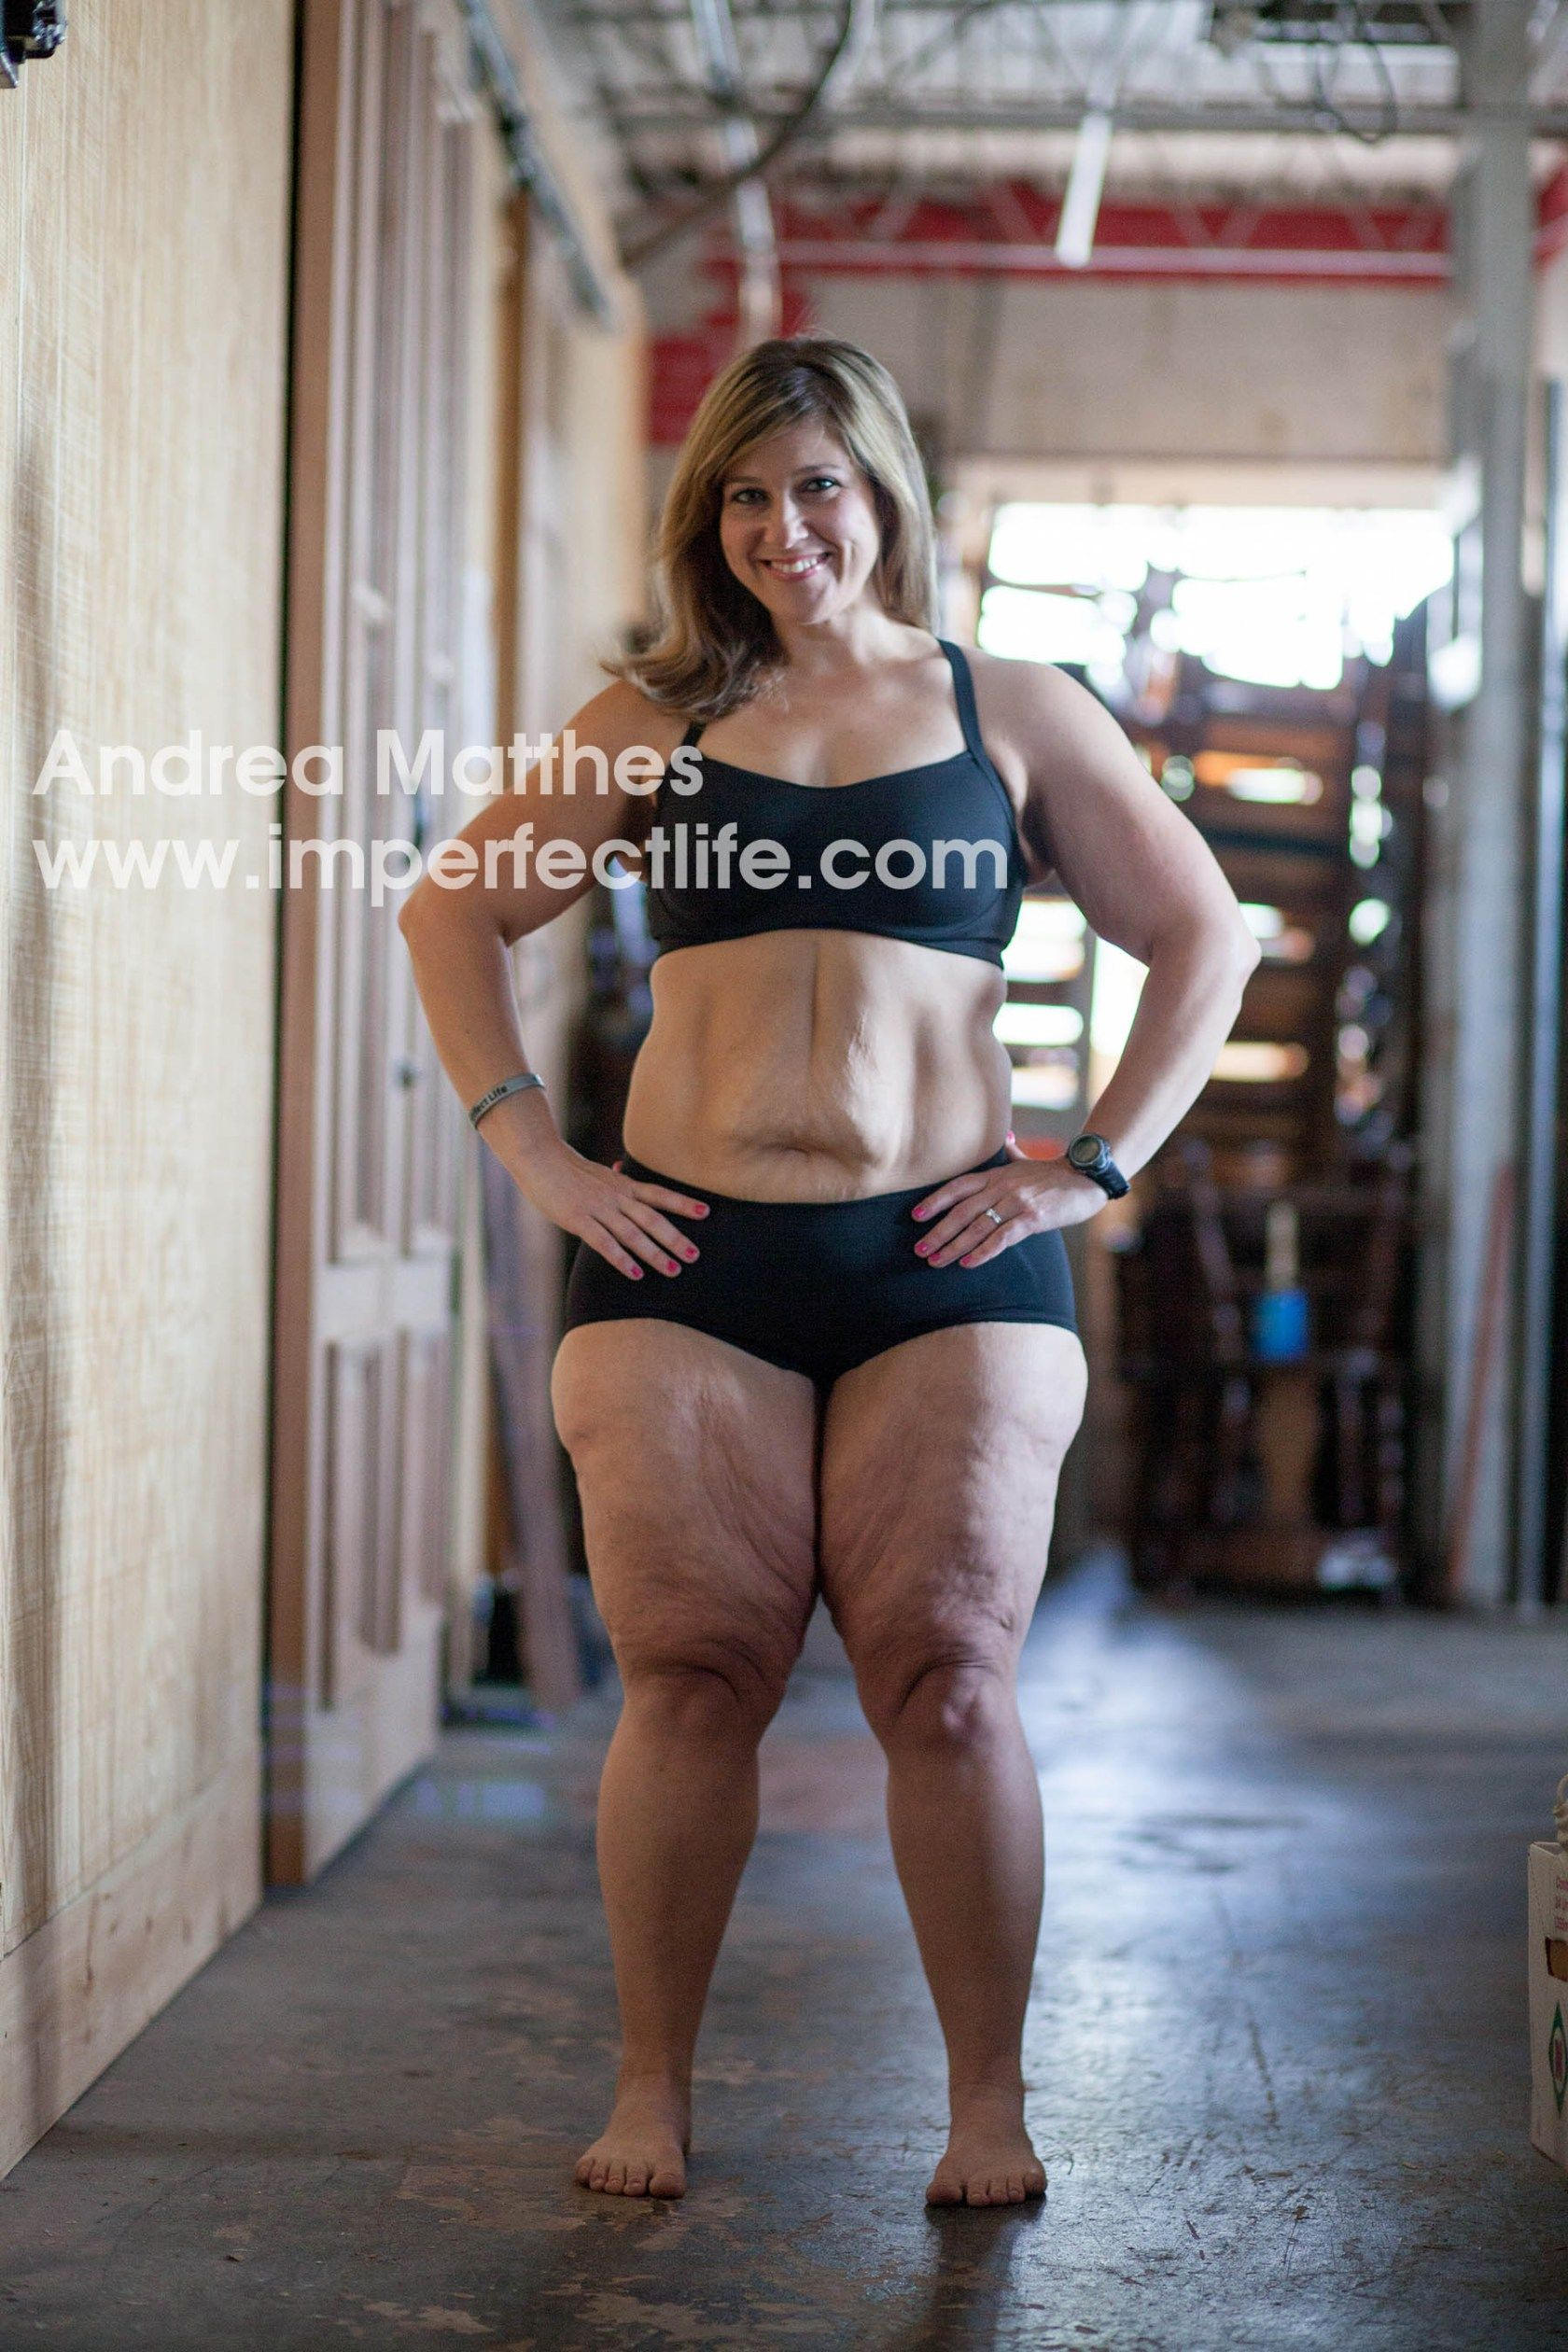 Female body ugly 27 Attractive